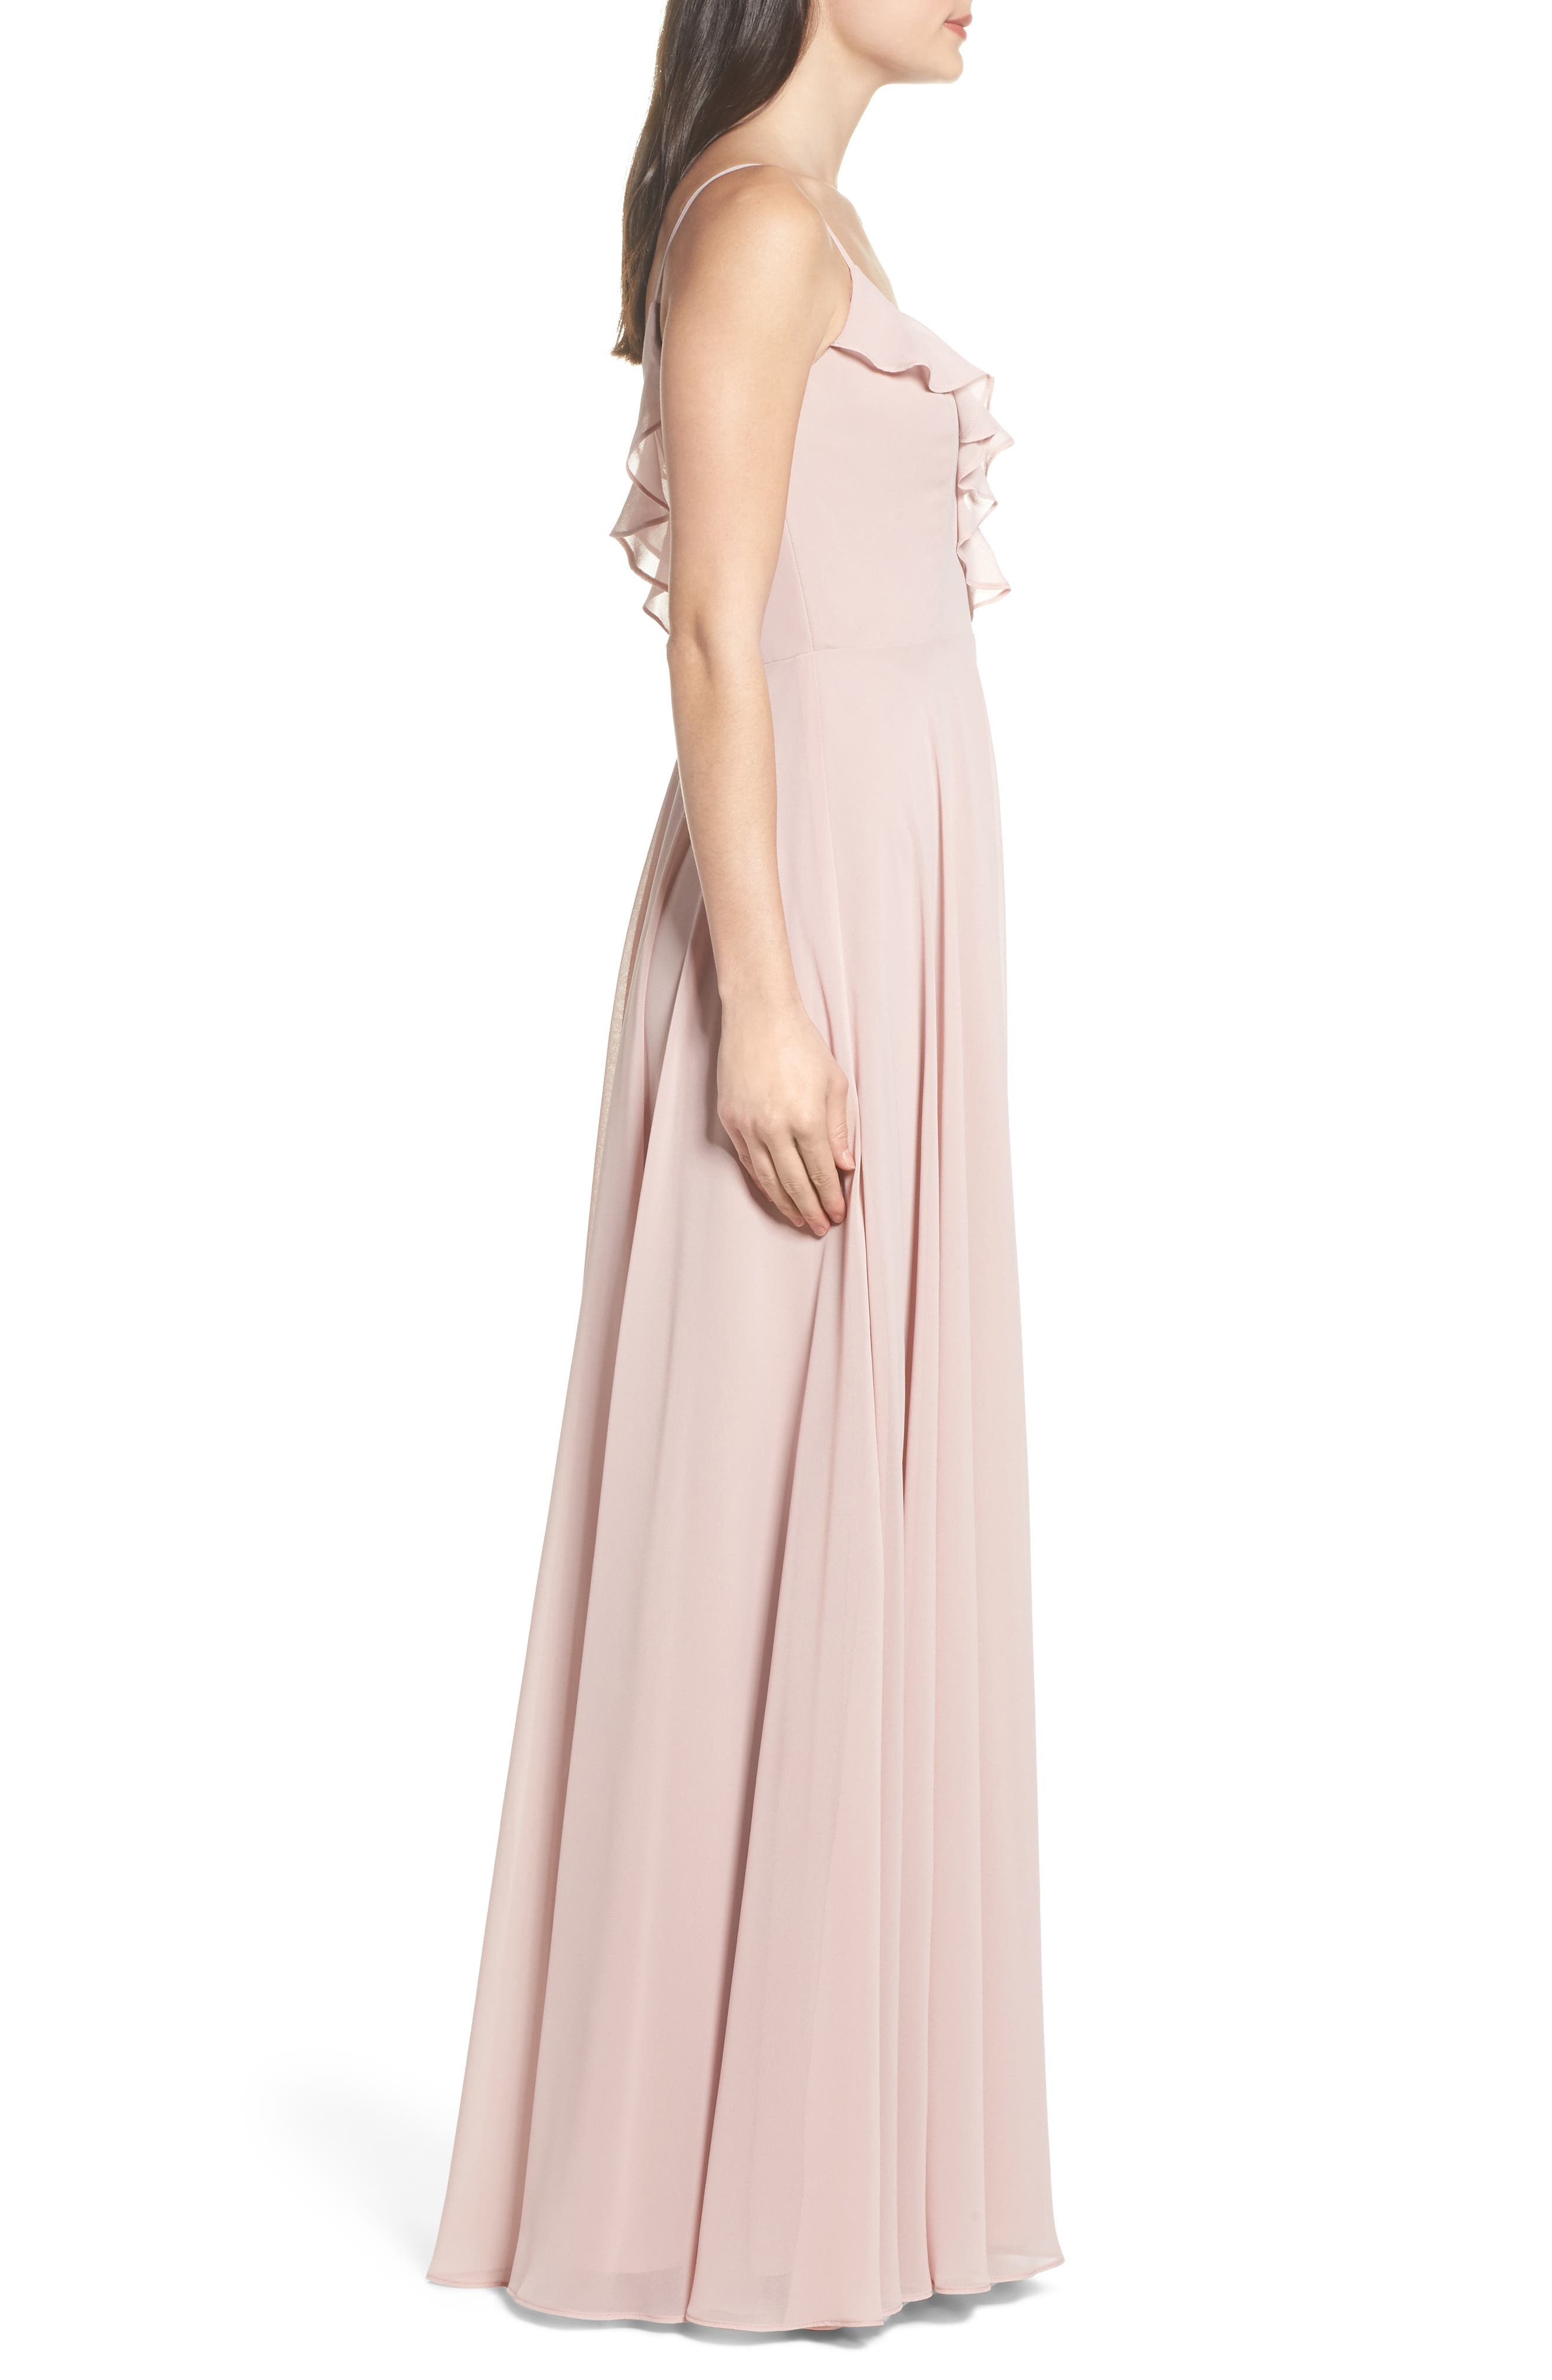 HAYLEY PAIGE OCCASIONS, Ruffle Chiffon Gown, Alternate thumbnail 4, color, DUSTY ROSE